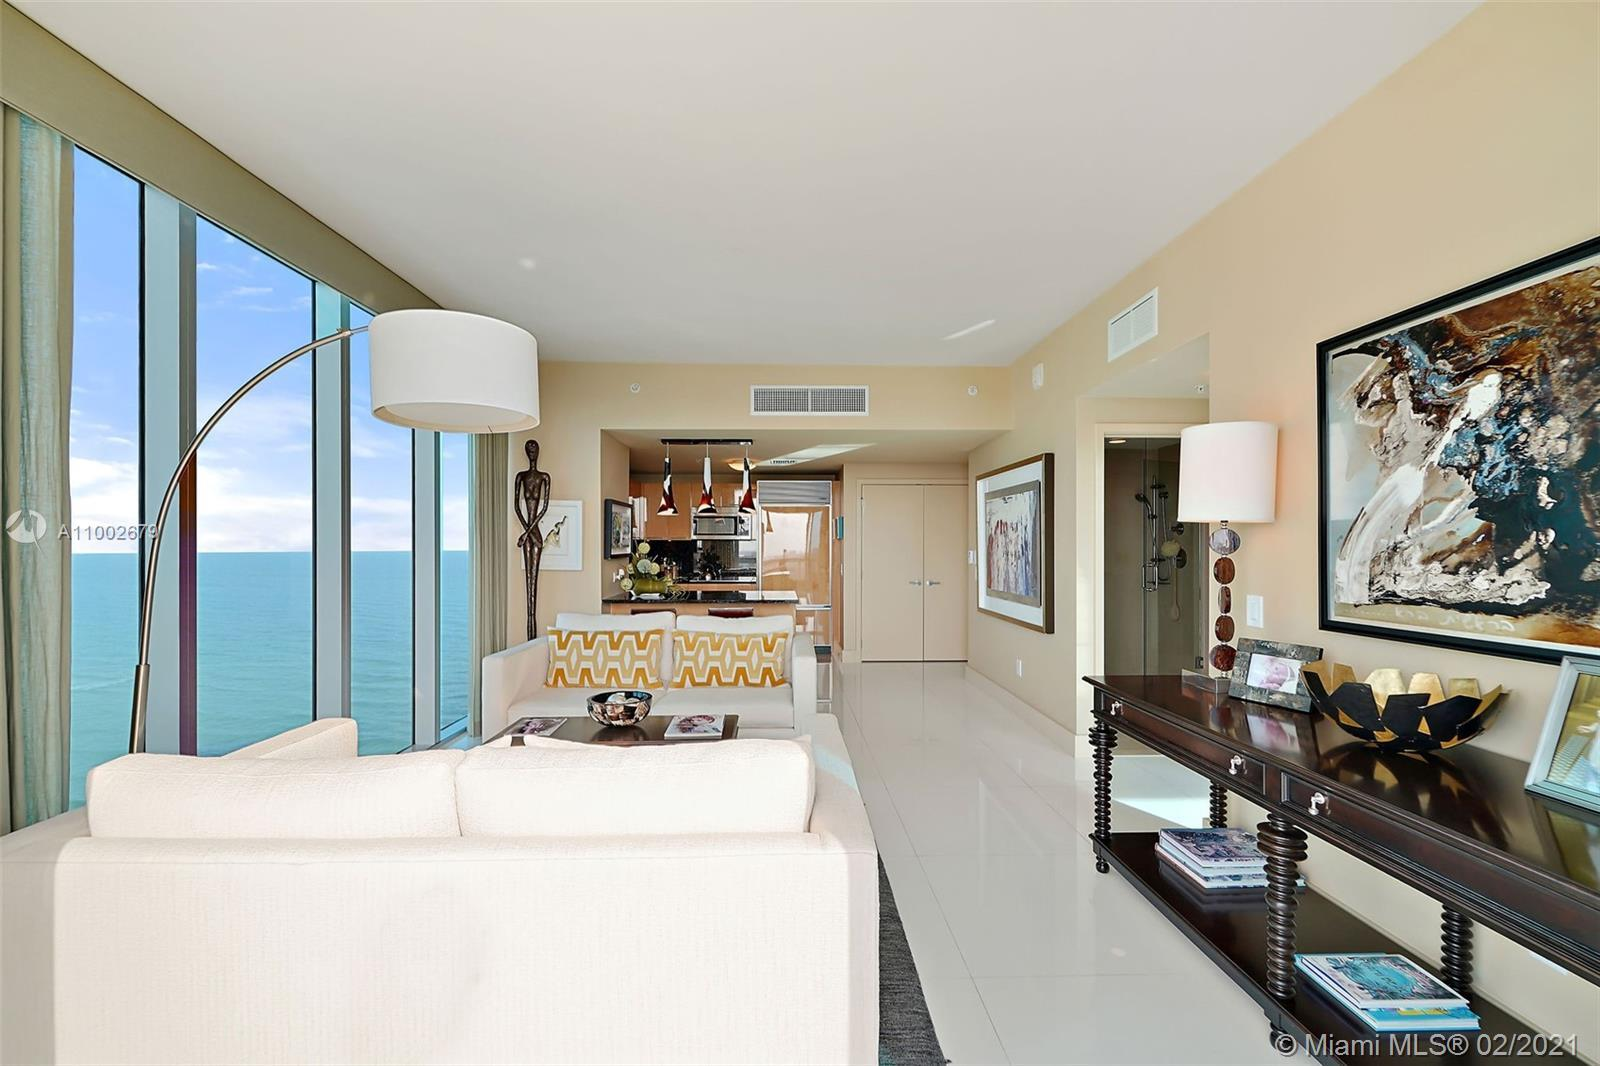 BEAUTIFUL INTRACOASTAL, SUNSET, CITY and PARTIAL OCEAN views from 14th floor in prestigious North To